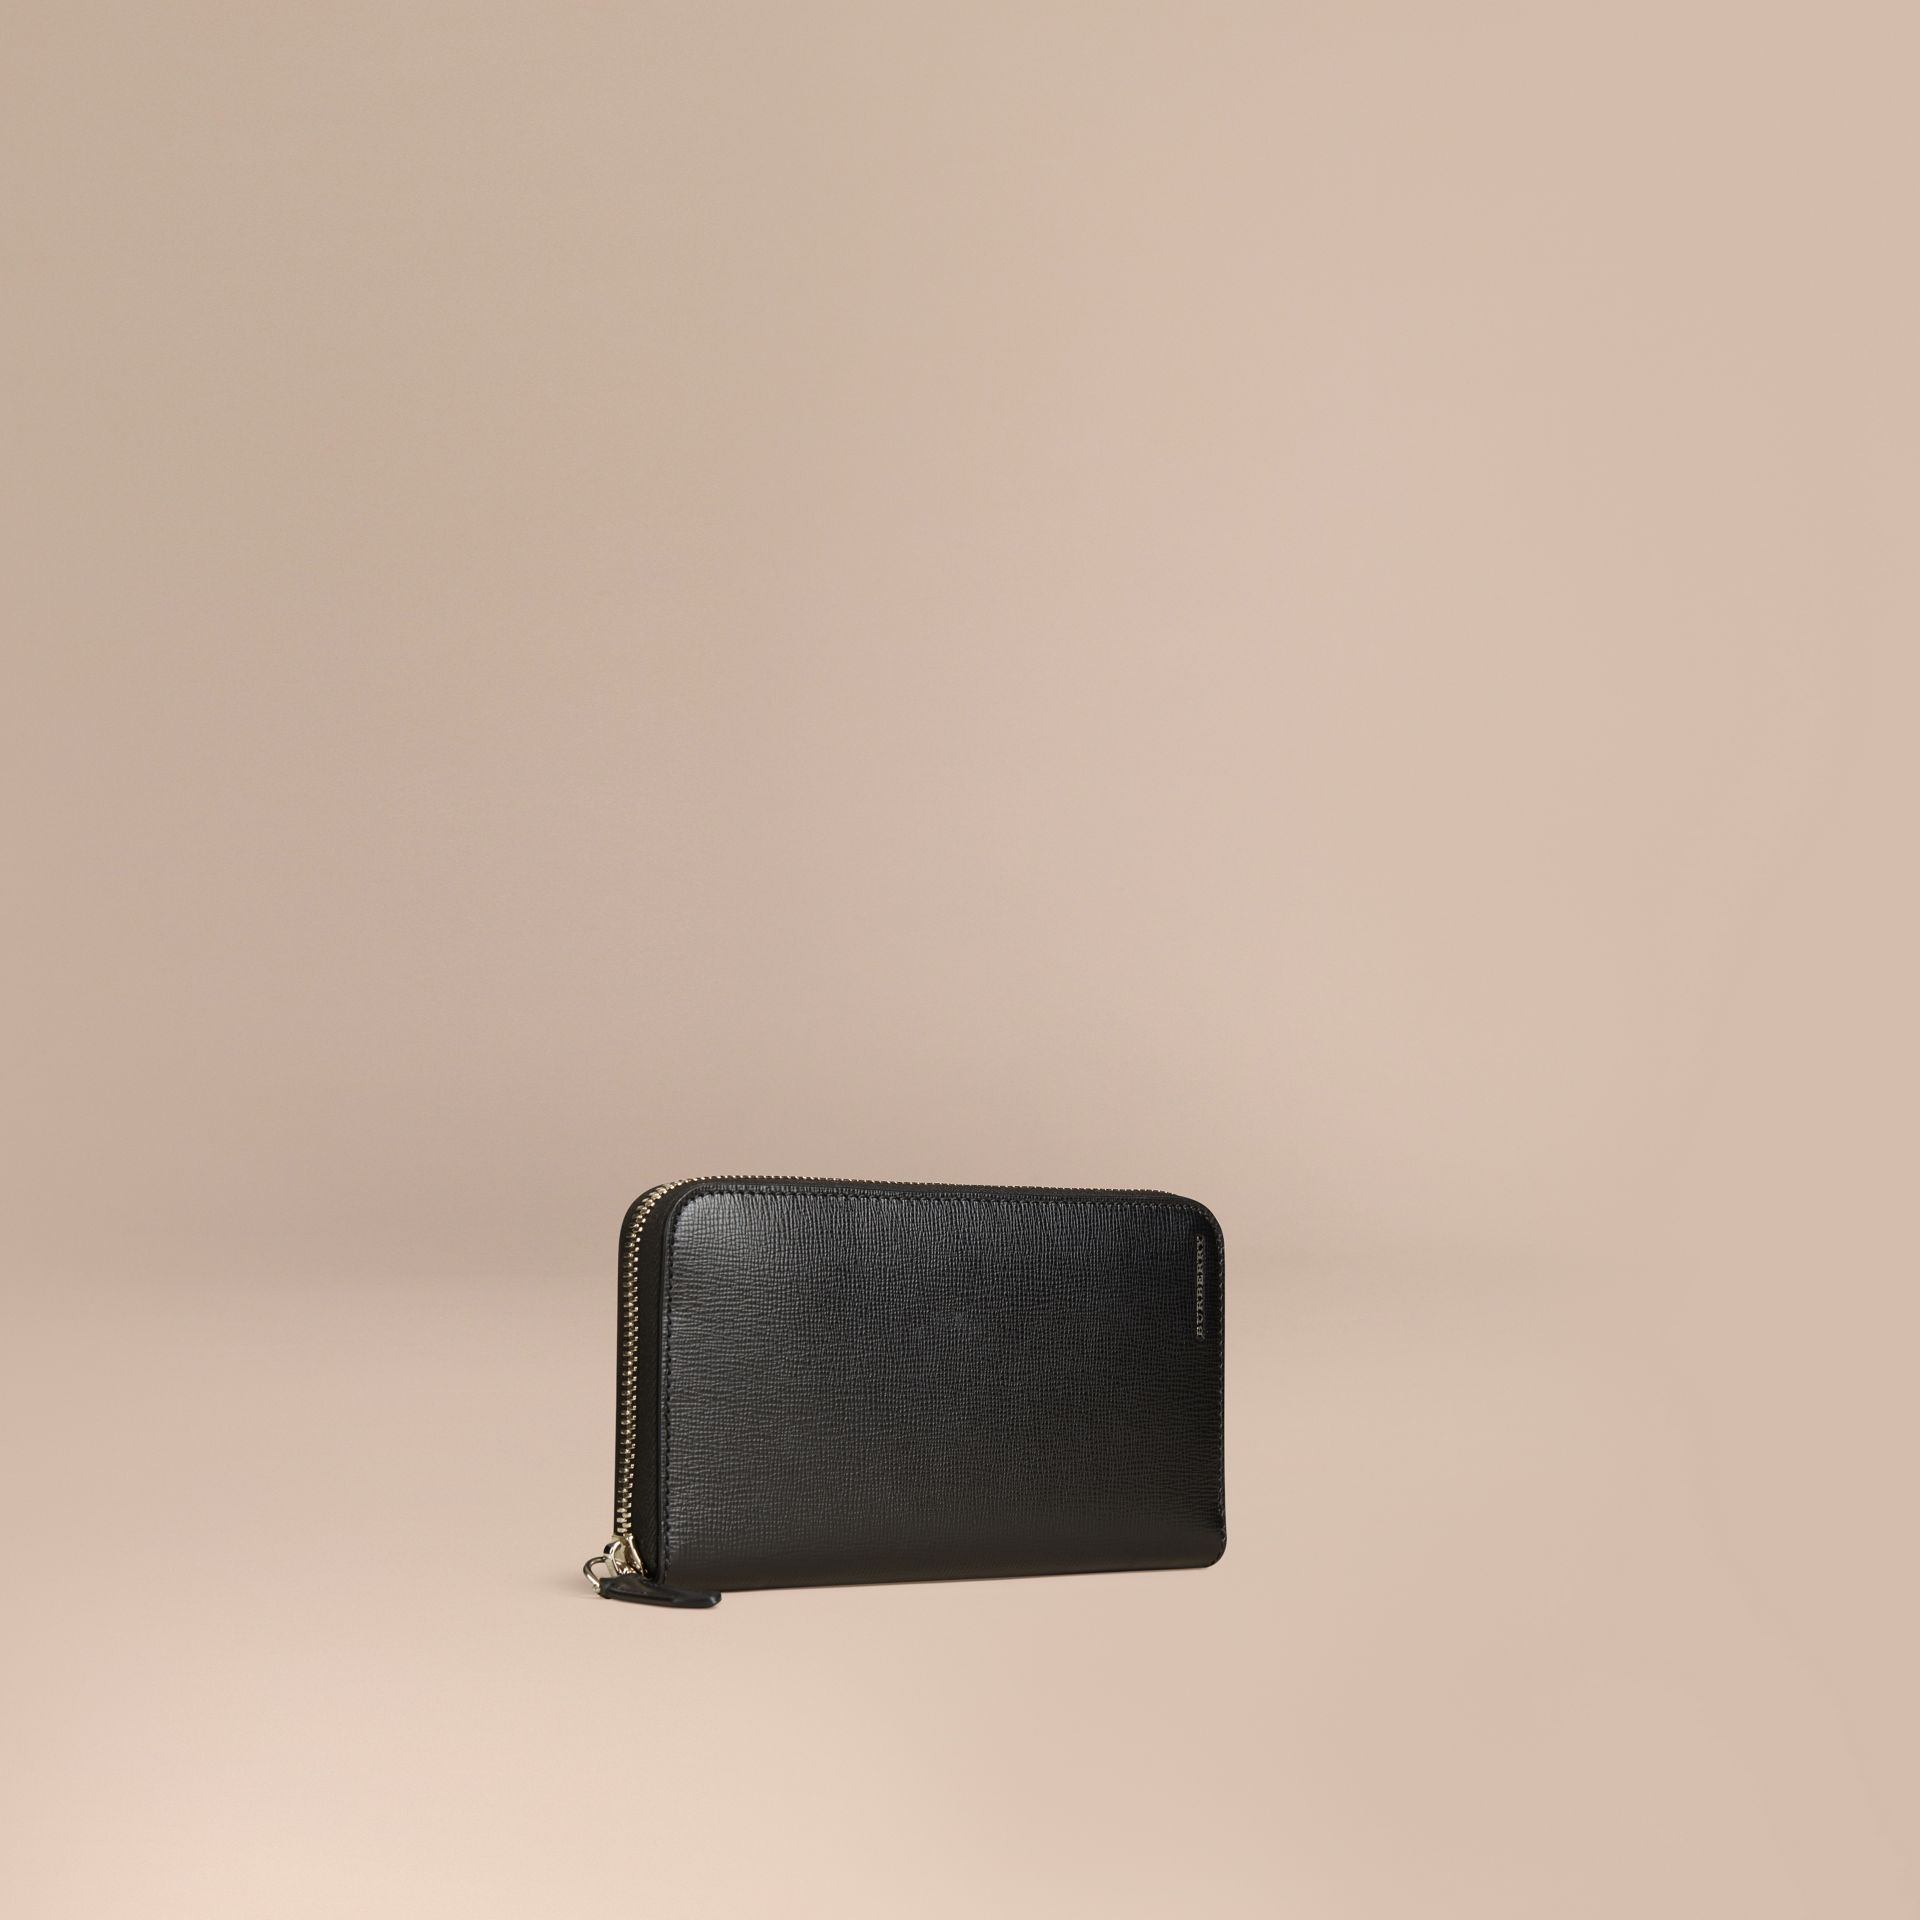 Black London Leather Ziparound Wallet Black - gallery image 1